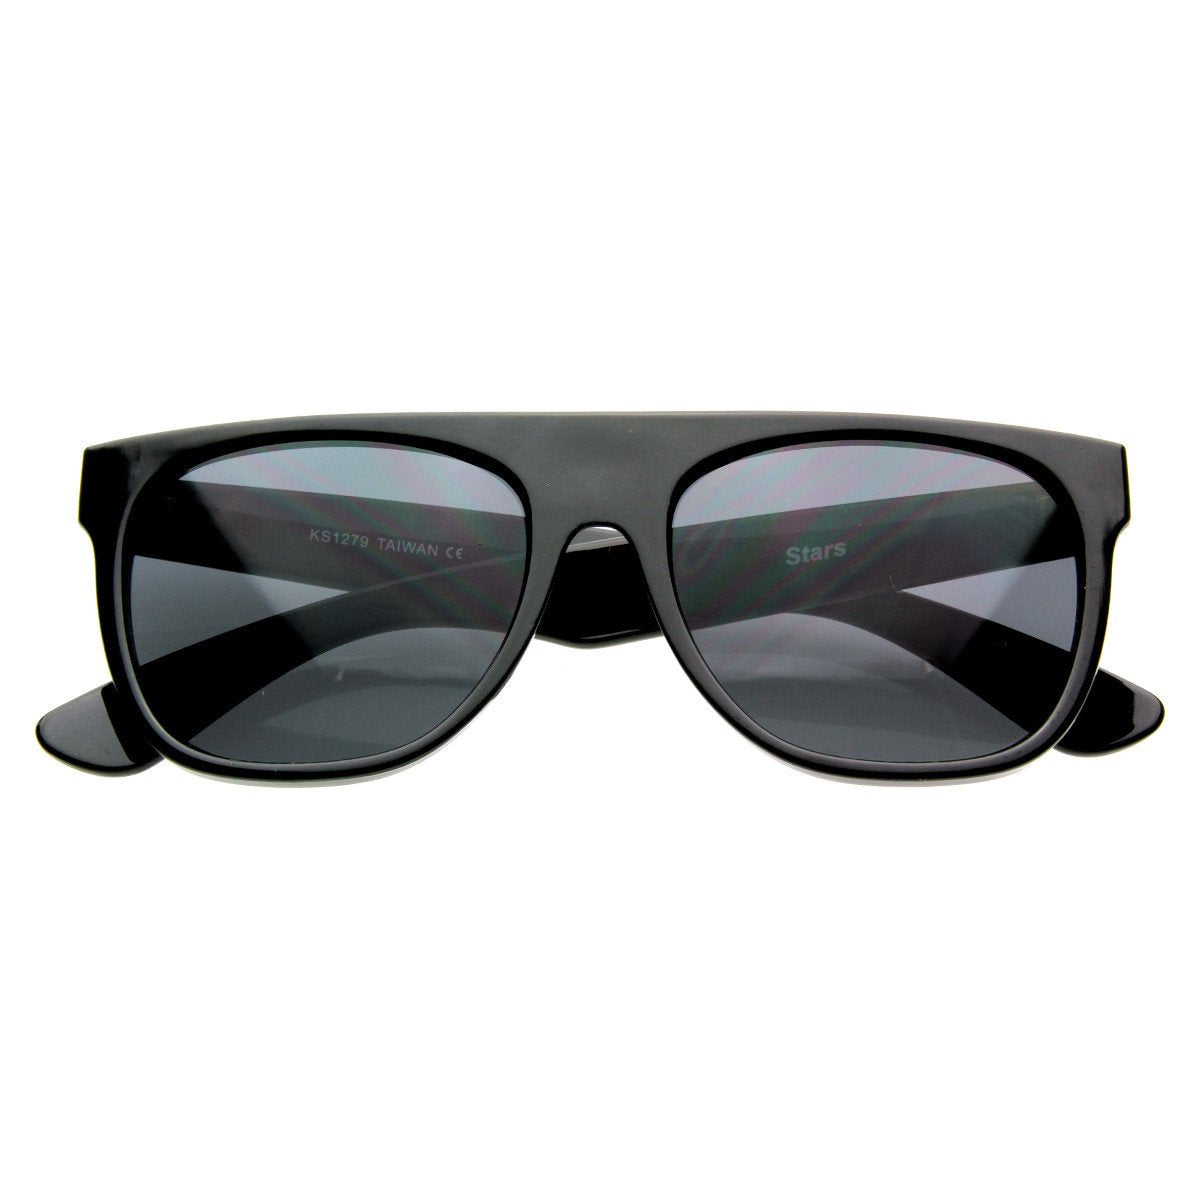 51eb9c93bd44 ... Super Flat Top Retro Horned Rim Sunglasses 8066 · Shiny Black